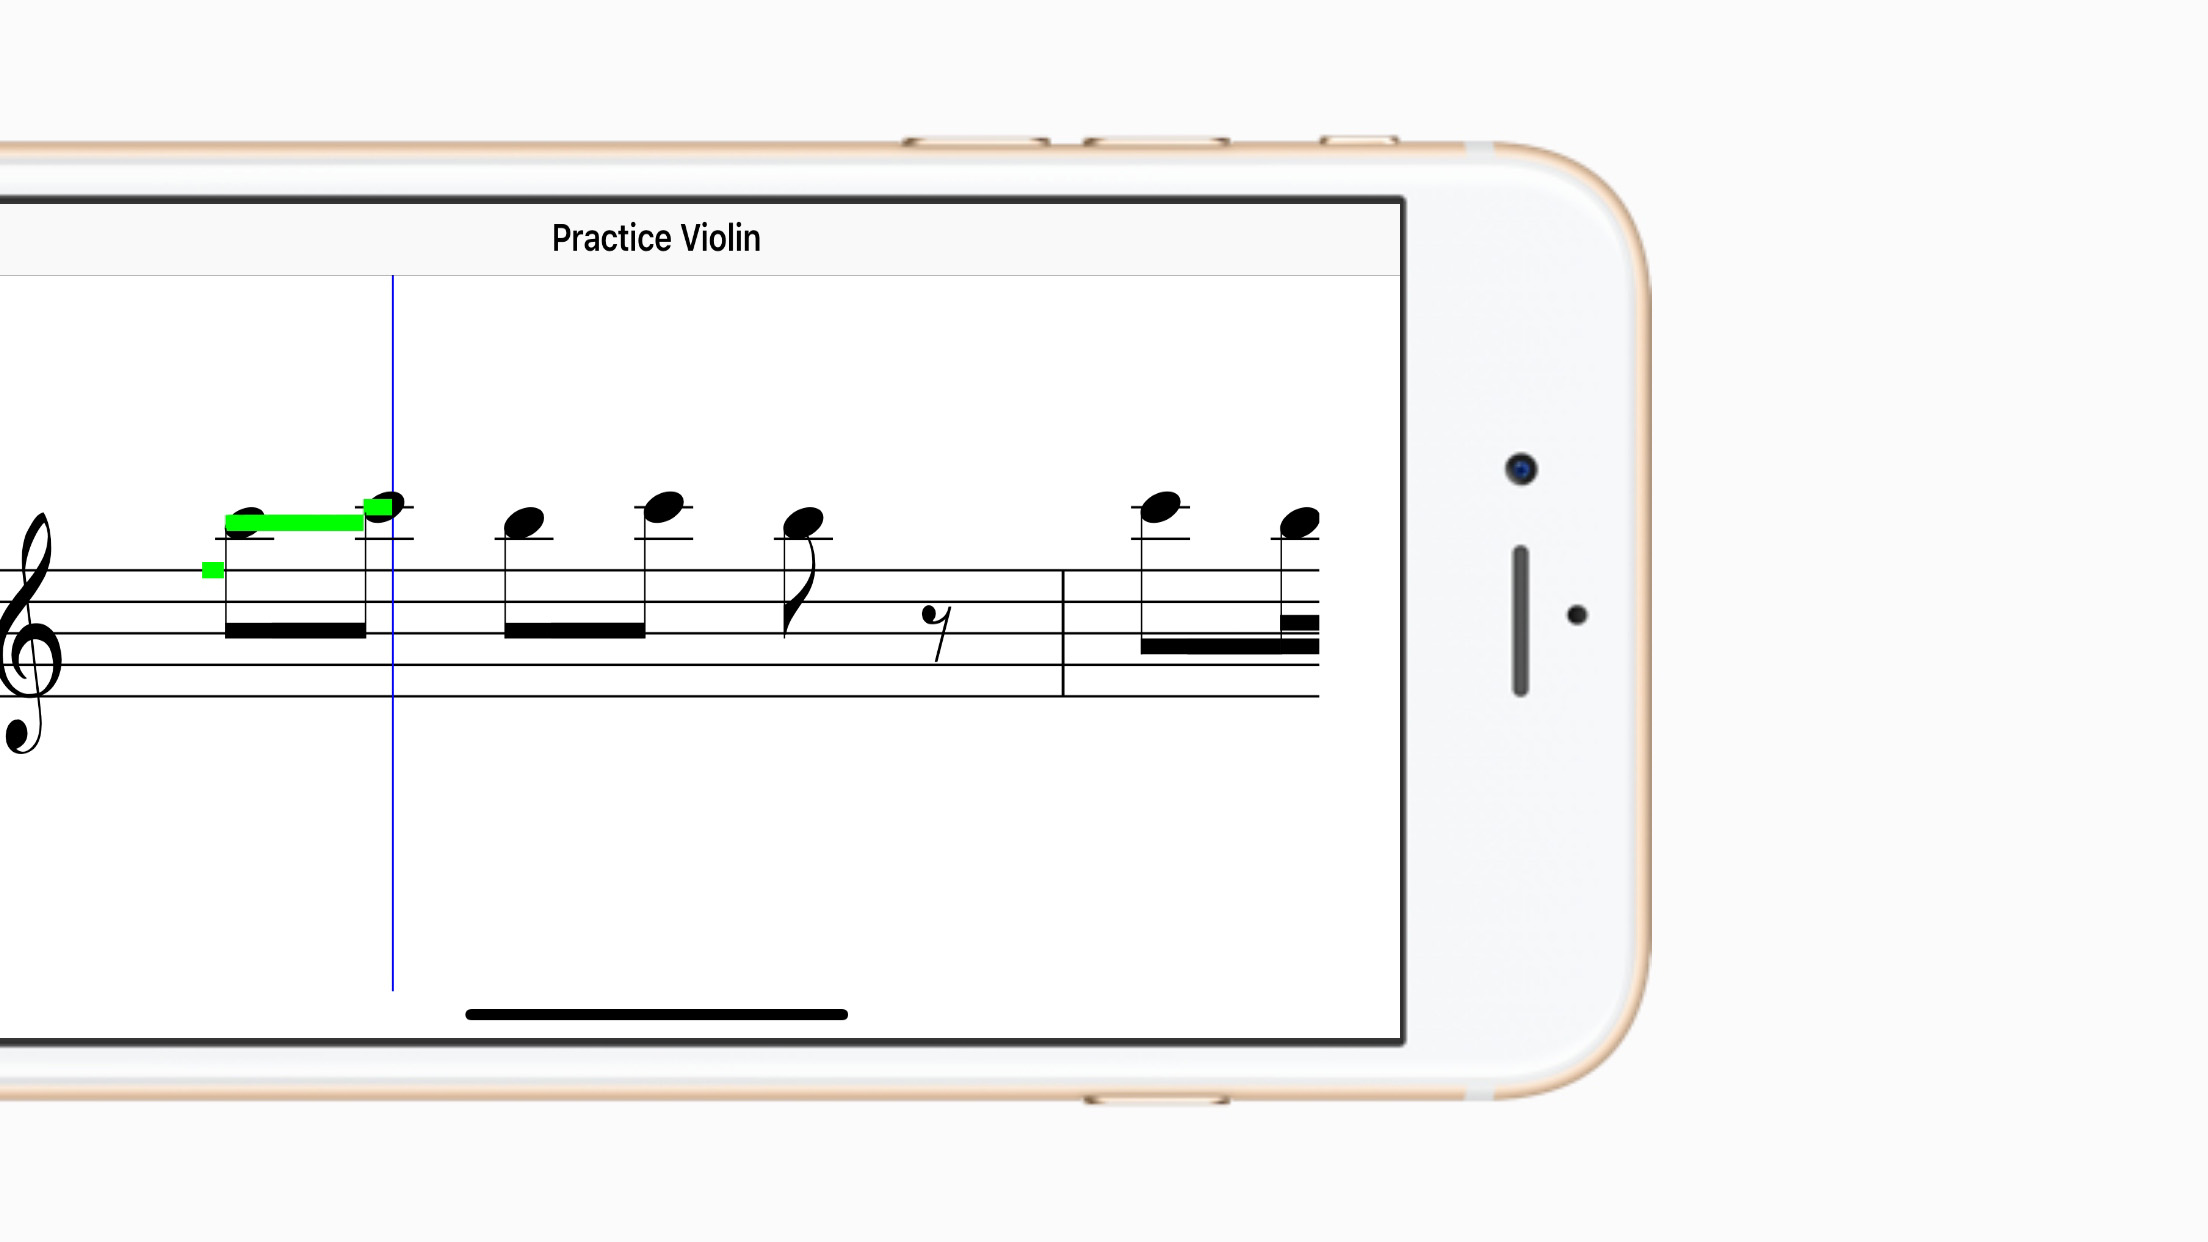 PrimaVista - PrimaVista™ is an artificially intelligent sight-reading trainer, now available in the App Store for iOS Devices.Its patent-pending musical intelligence composes music tailored to your ability, as you play, so you're always challenged just enough.Download Now